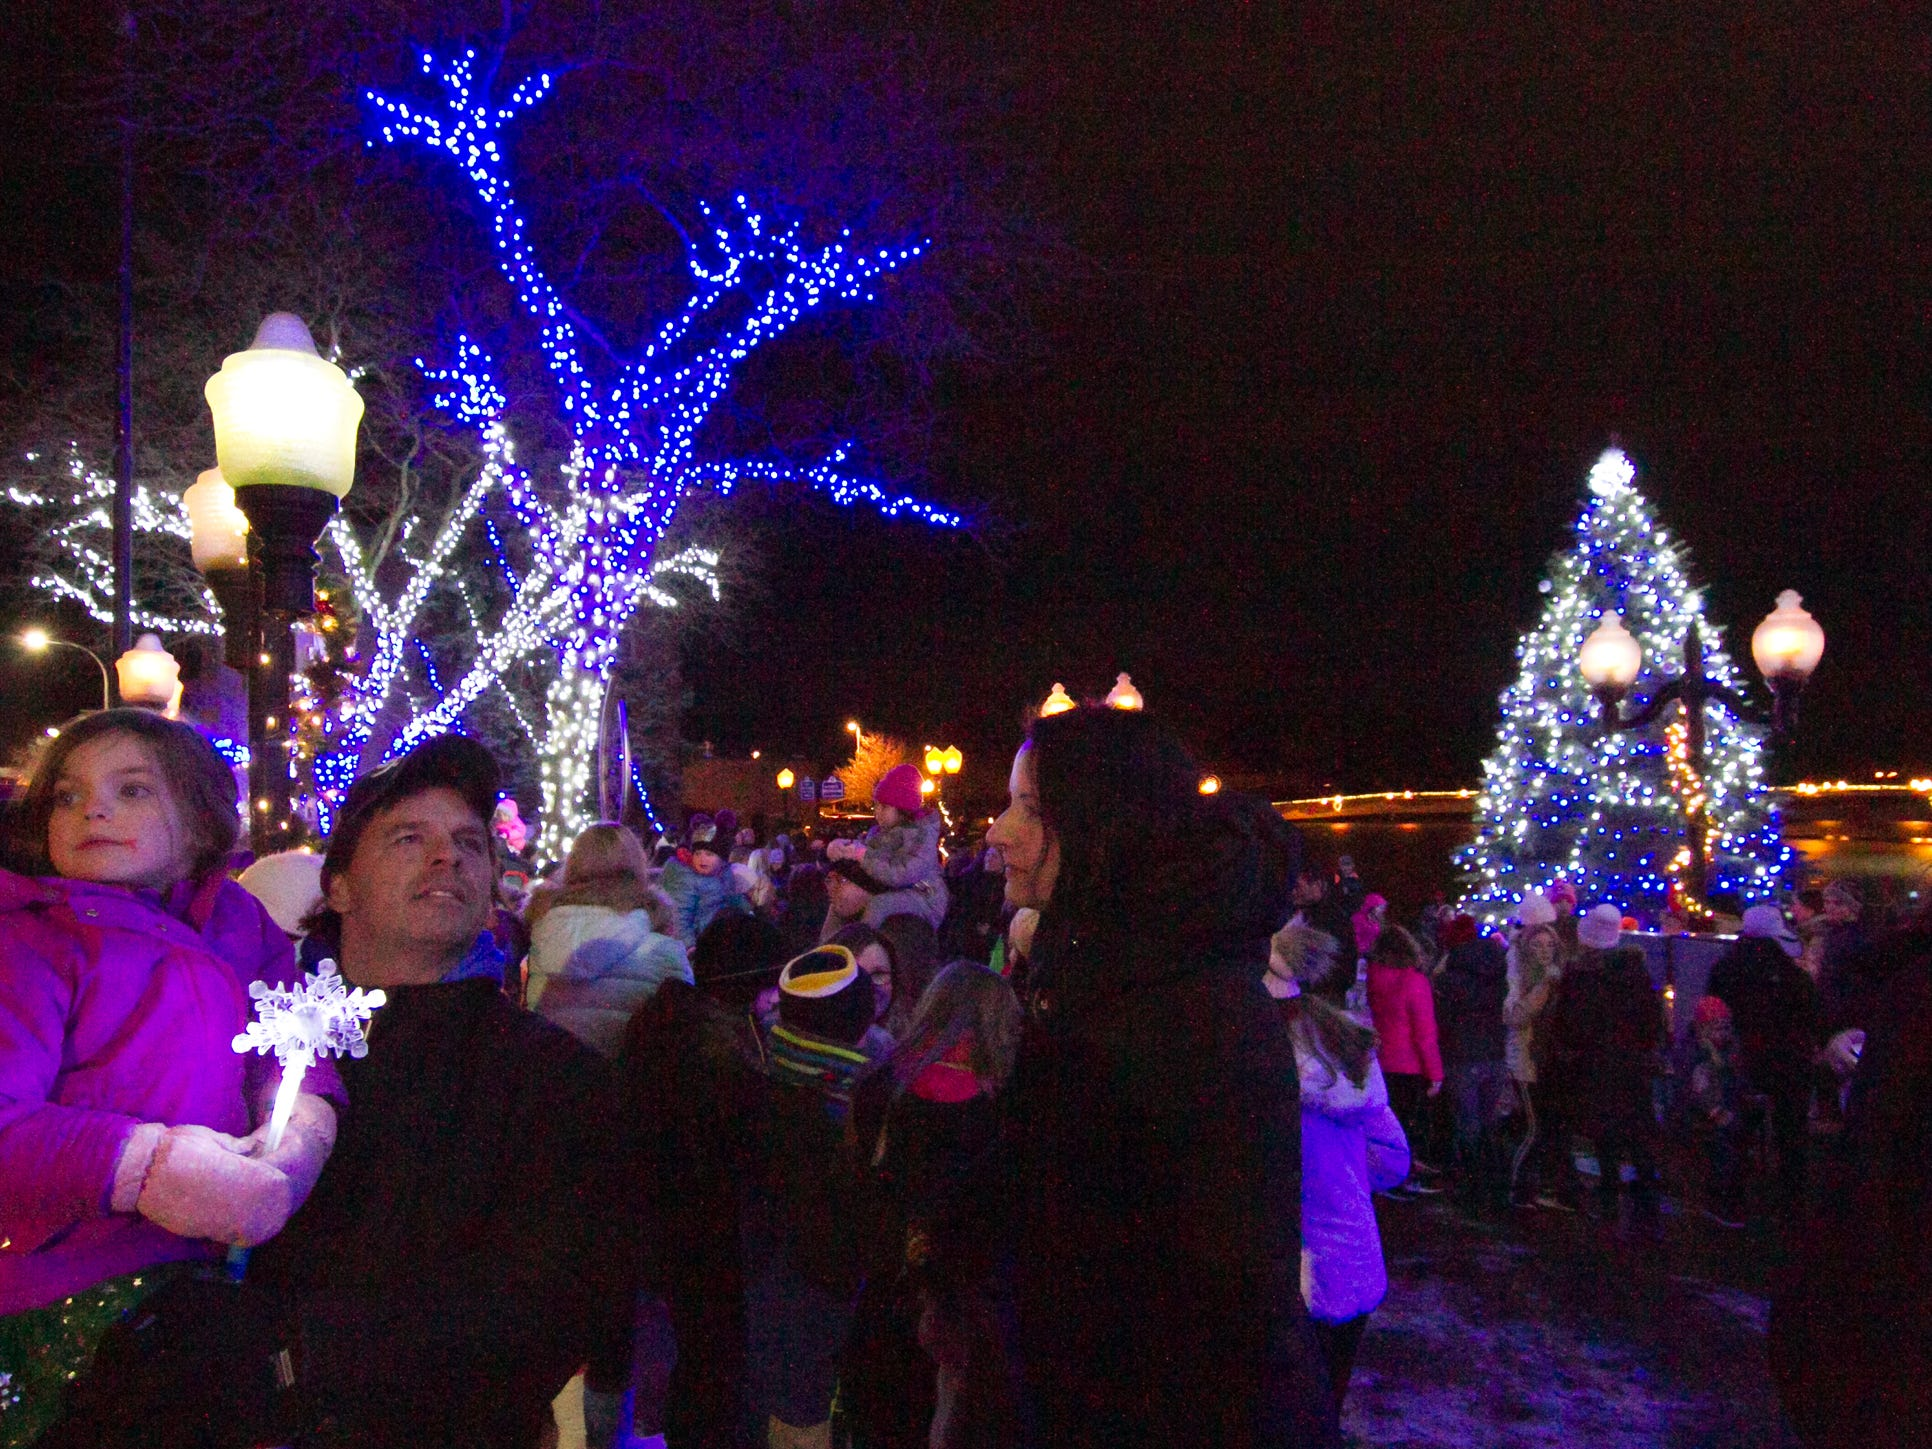 Lights on the Mill Pond and in the Christmas tree are lit on command from Santa Claus Saturday, Nov. 17, 2018 at Brighton's Holiday Glow.